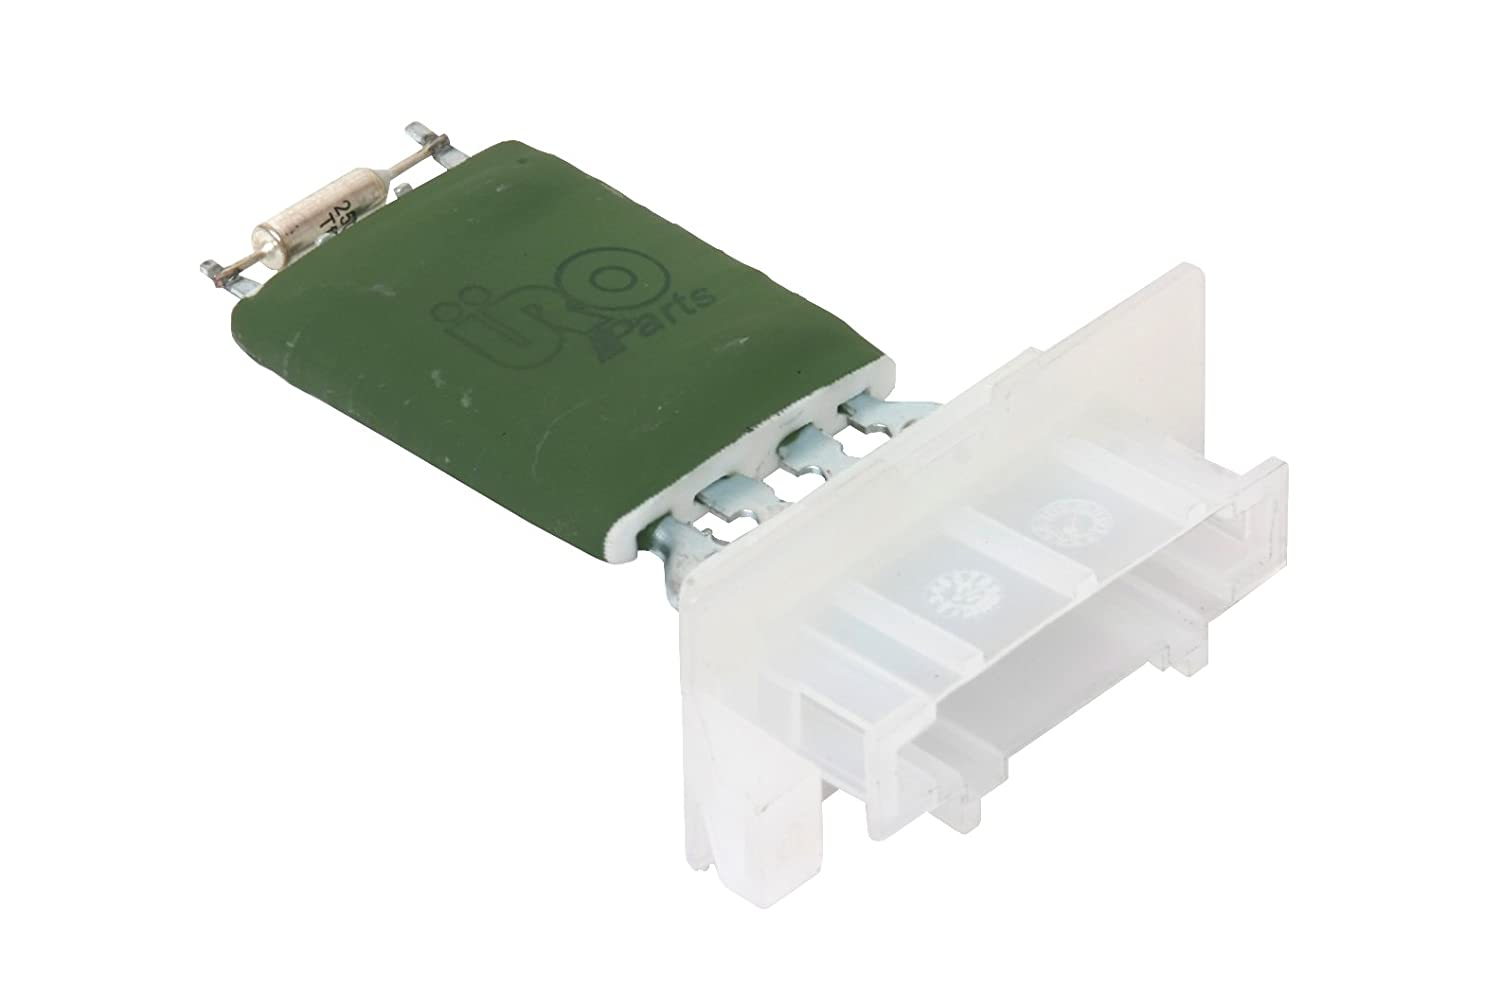 Blower Motors Heating Automotive Motor Resistor Control Module 2006 On Ford F150 Uro Parts 1k0 959 263a